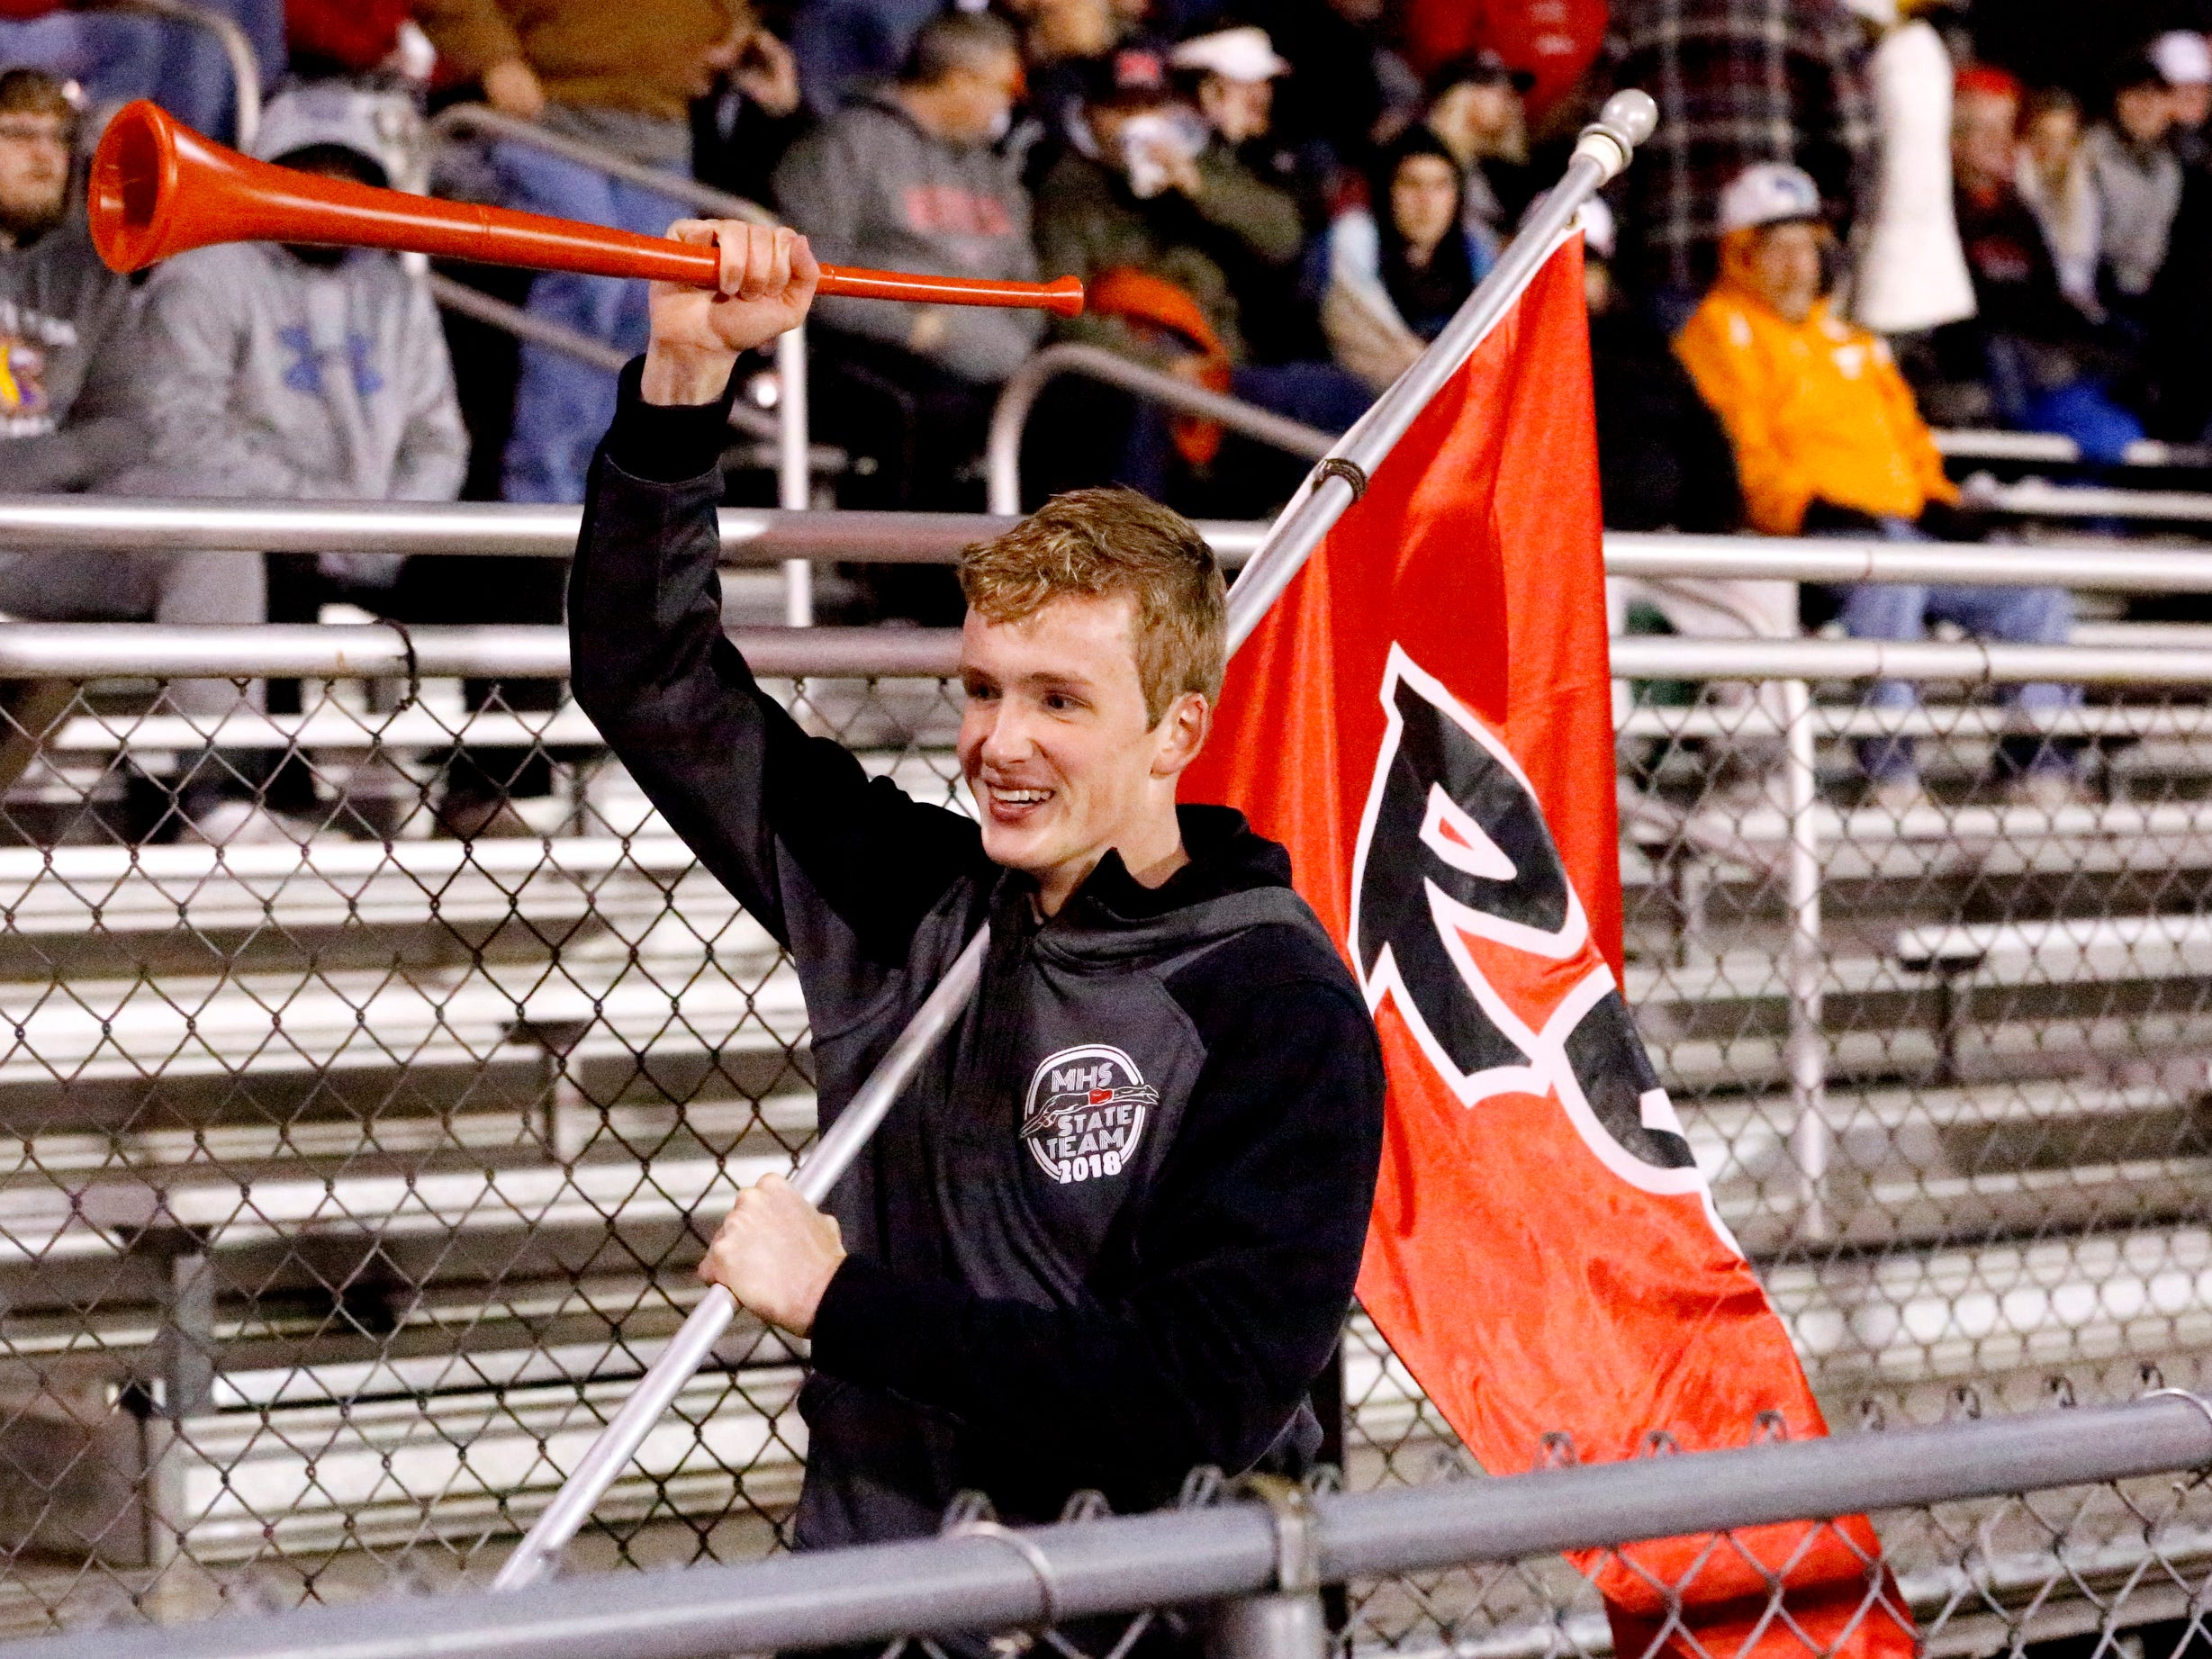 Maryville junior Caleb Fikes pumps up the Maryville crowd before the start of the game between Oakland and Maryville in Murfreesboro, on Friday, Aug. 23 2018, during the 6A playoffs.